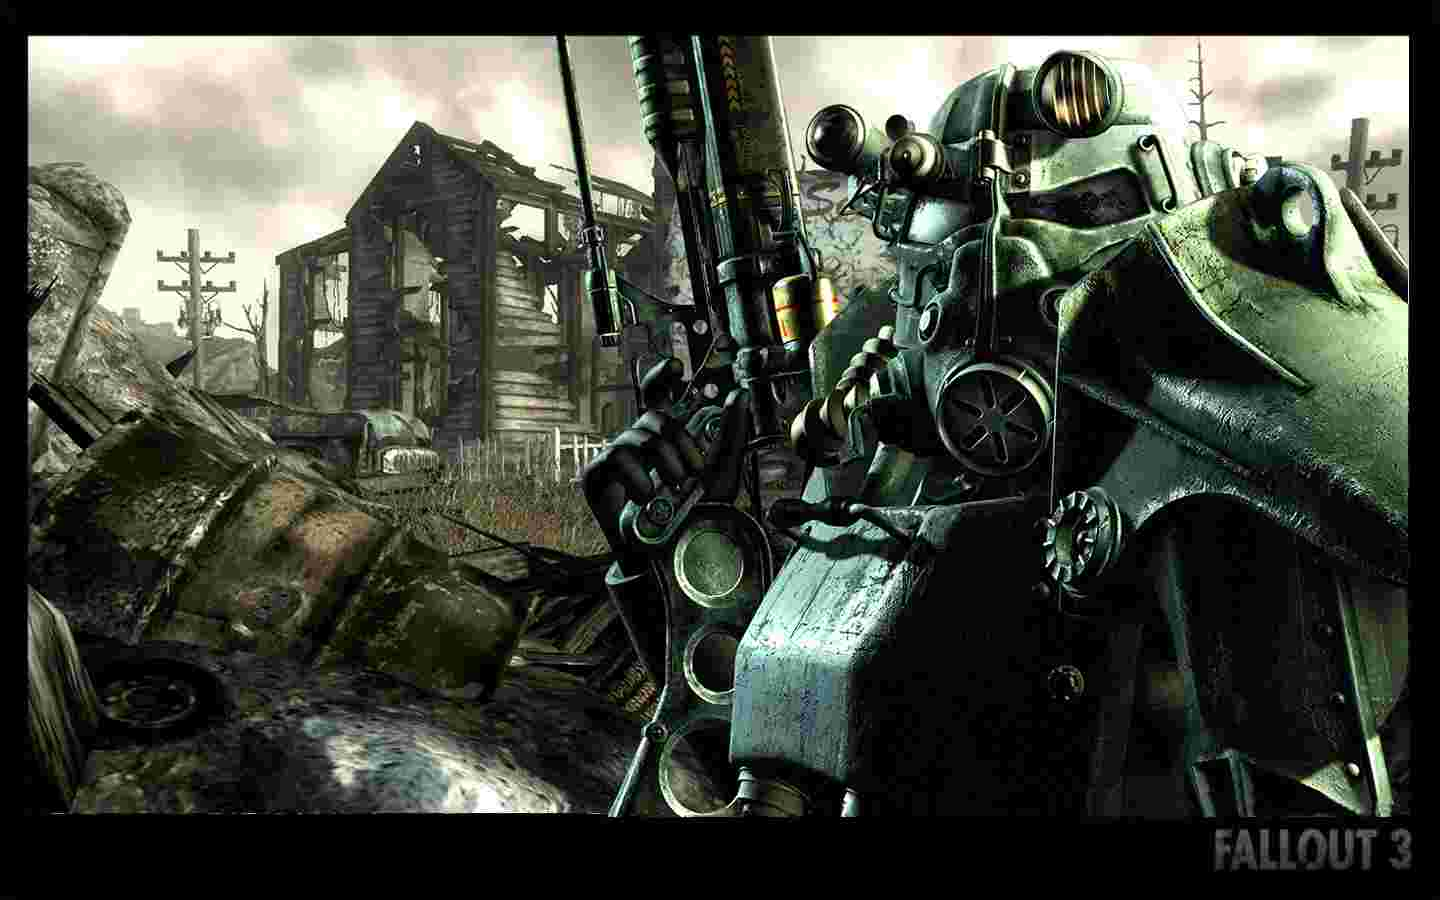 Fallout 3 wallpaper wallpapersafari fallout 3 wallpaper hd fallout 3 wallpaper fallout 3 bilder fallout 3 1440x900 thecheapjerseys